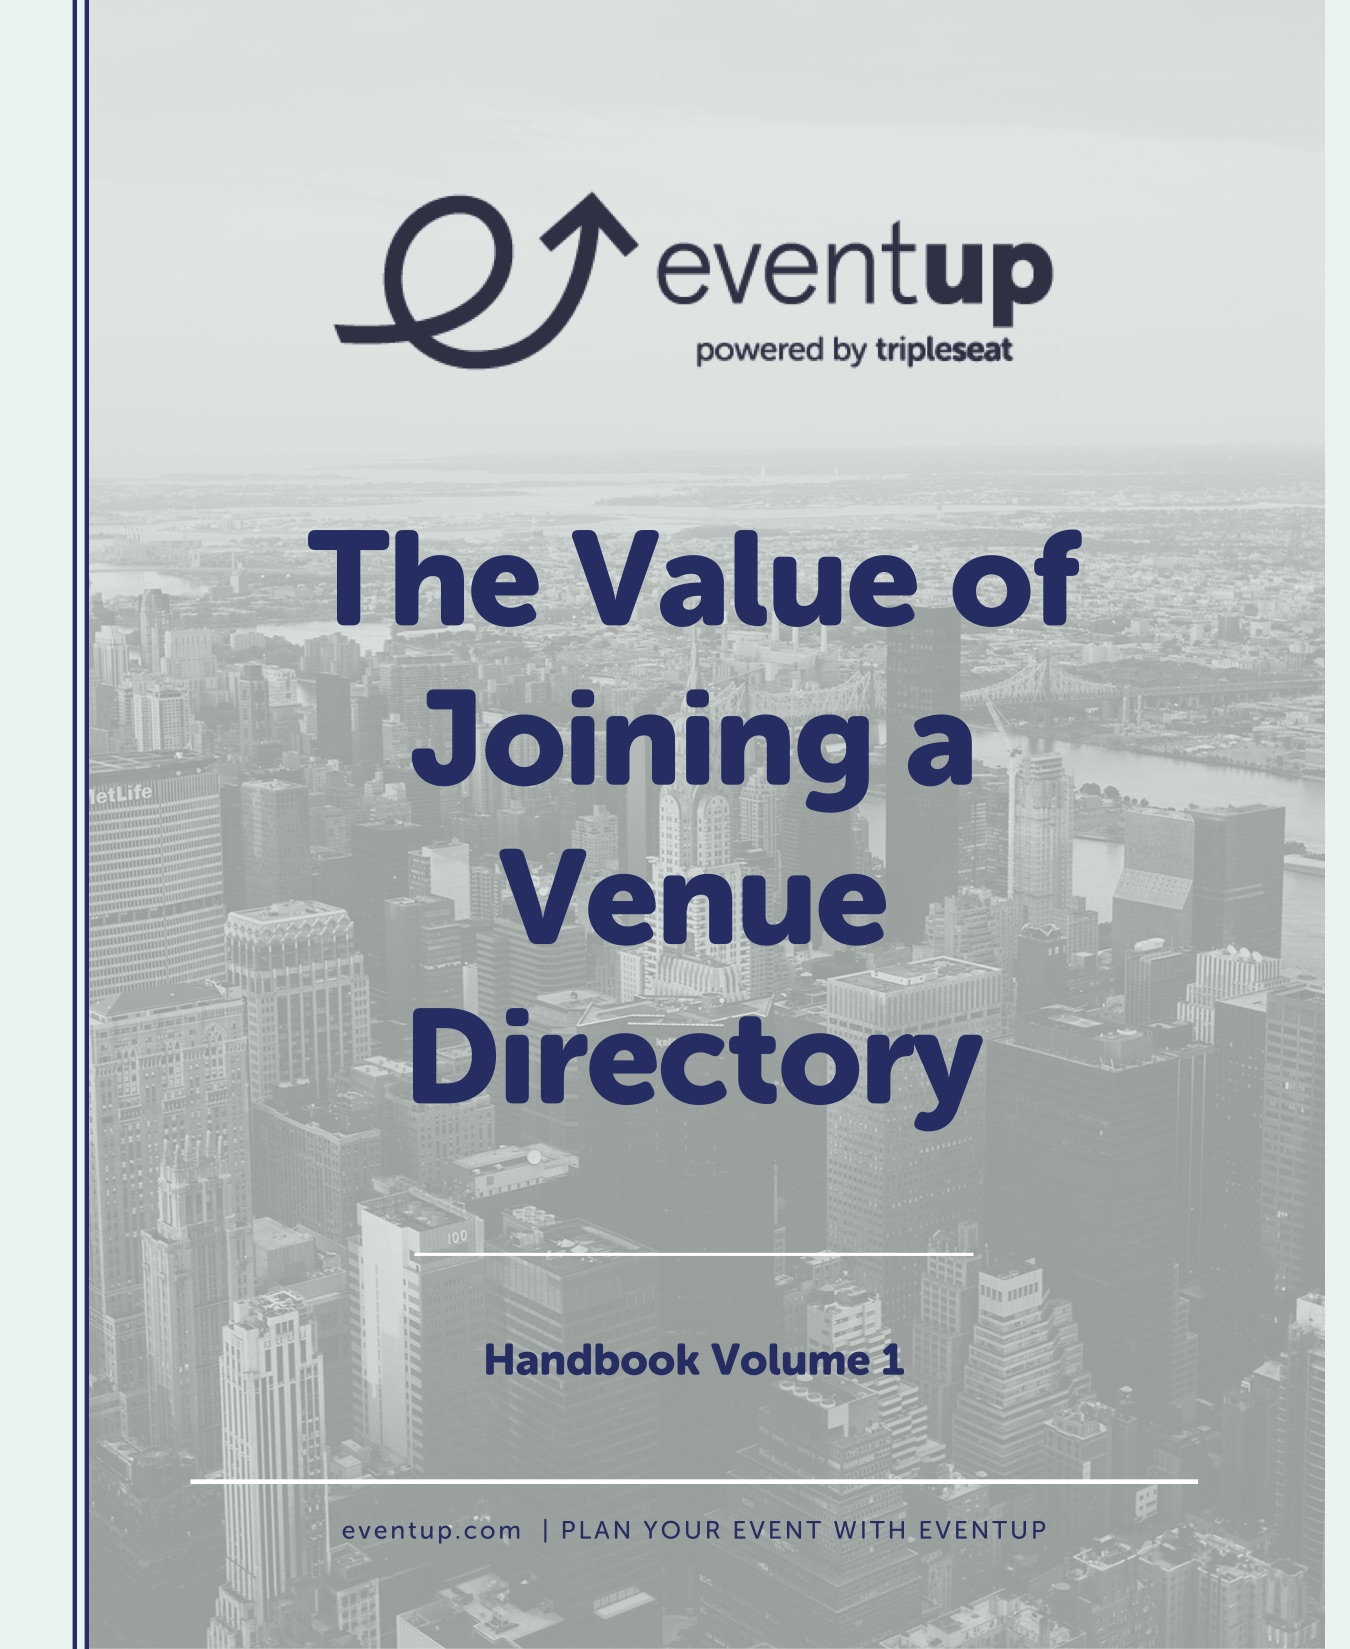 Handbook Vol 1 - The Value Of Joining A Directory